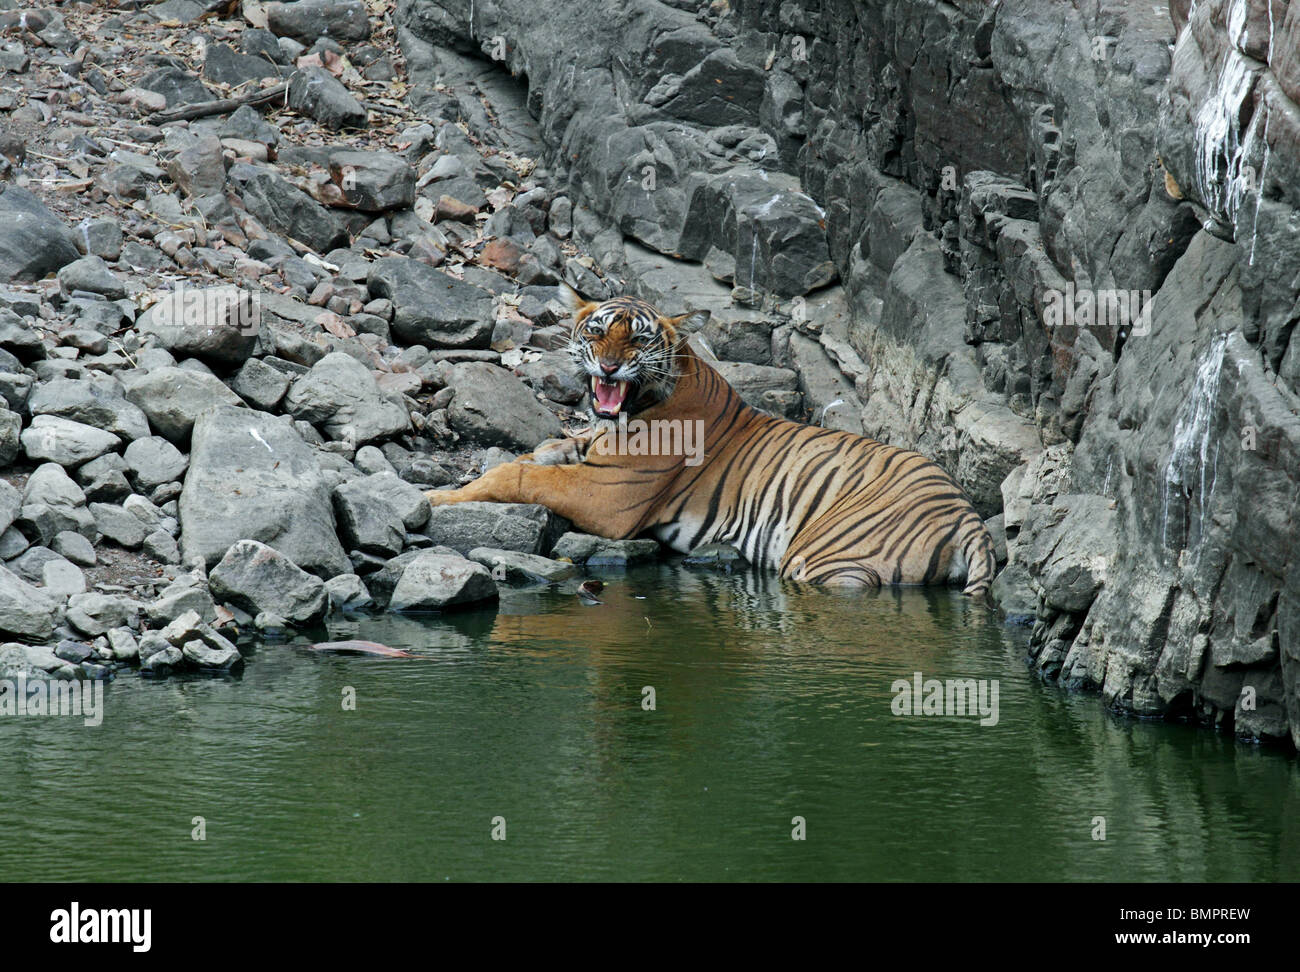 Tiger snarling while sitting in a water hole in Ranthambhore National Park, India - Stock Image